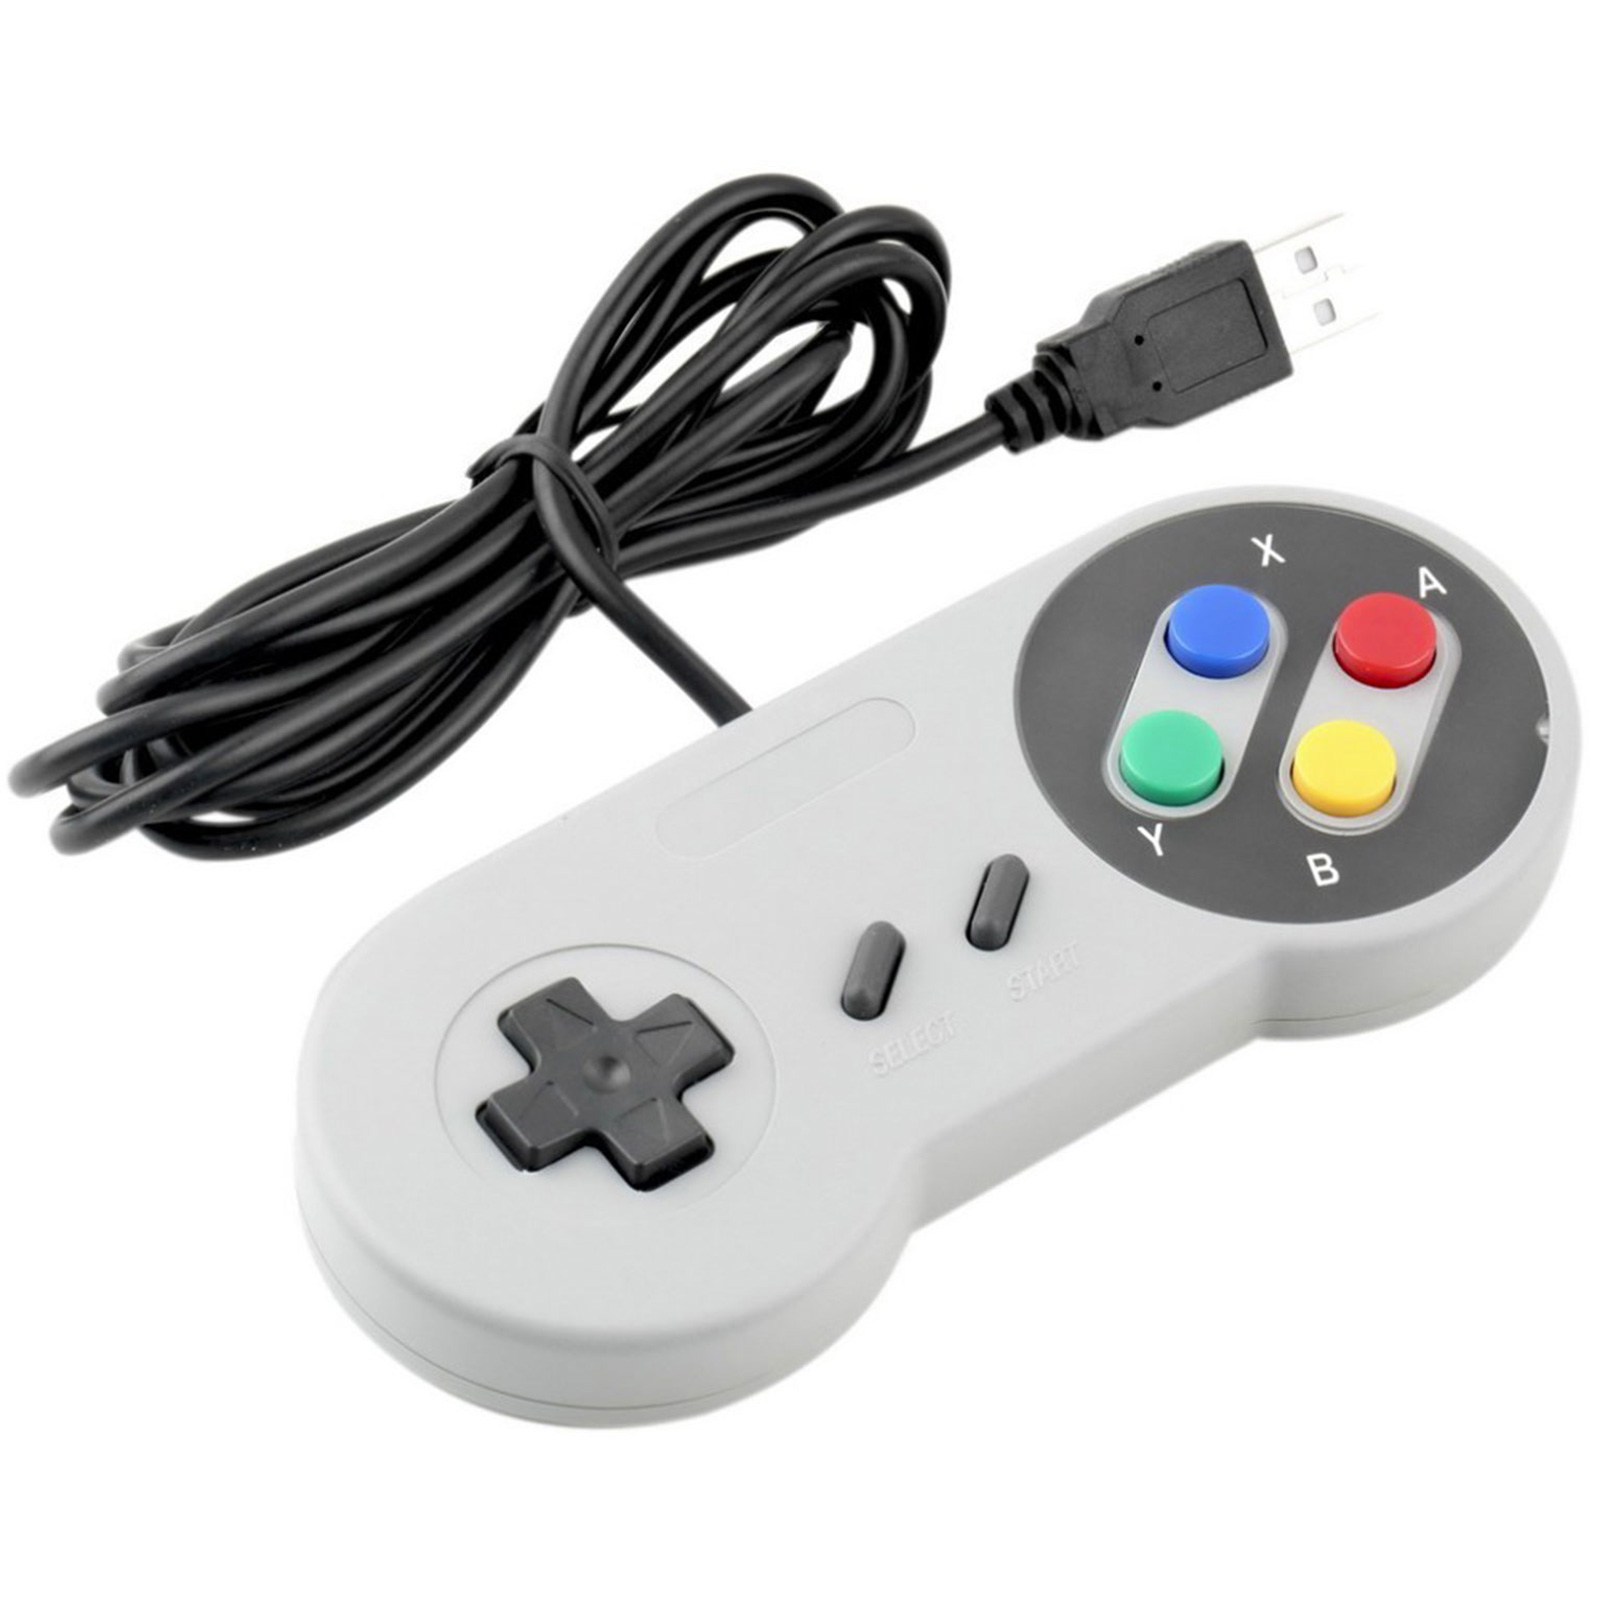 Retro Game USB Wired  Joystick  For Windows PC Mac